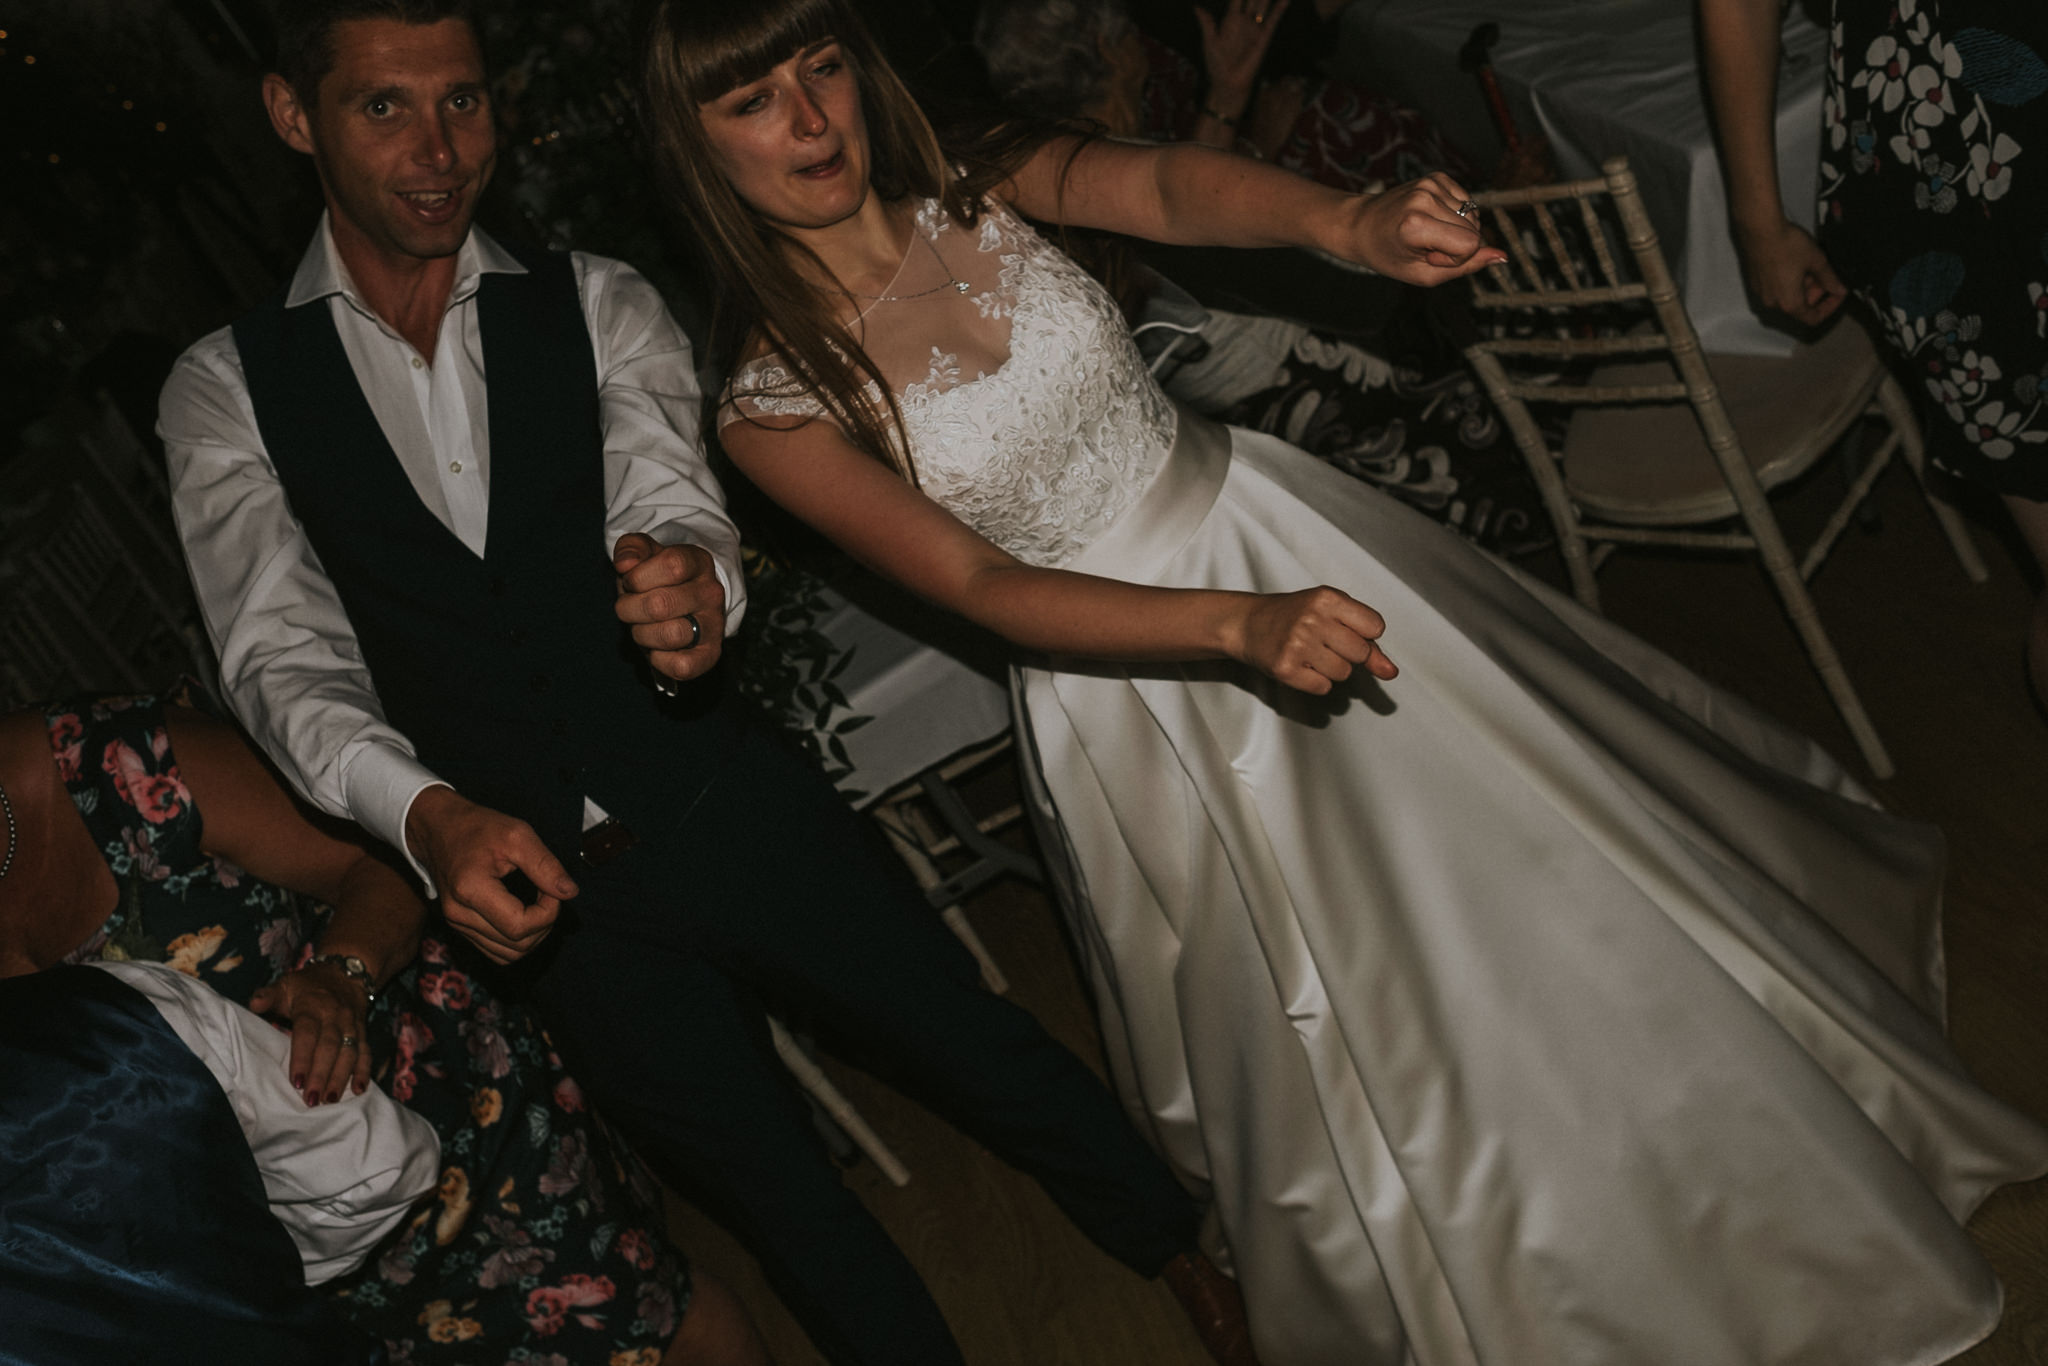 berkshire_wedding_photographer_emma_simon (308 of 327).jpg